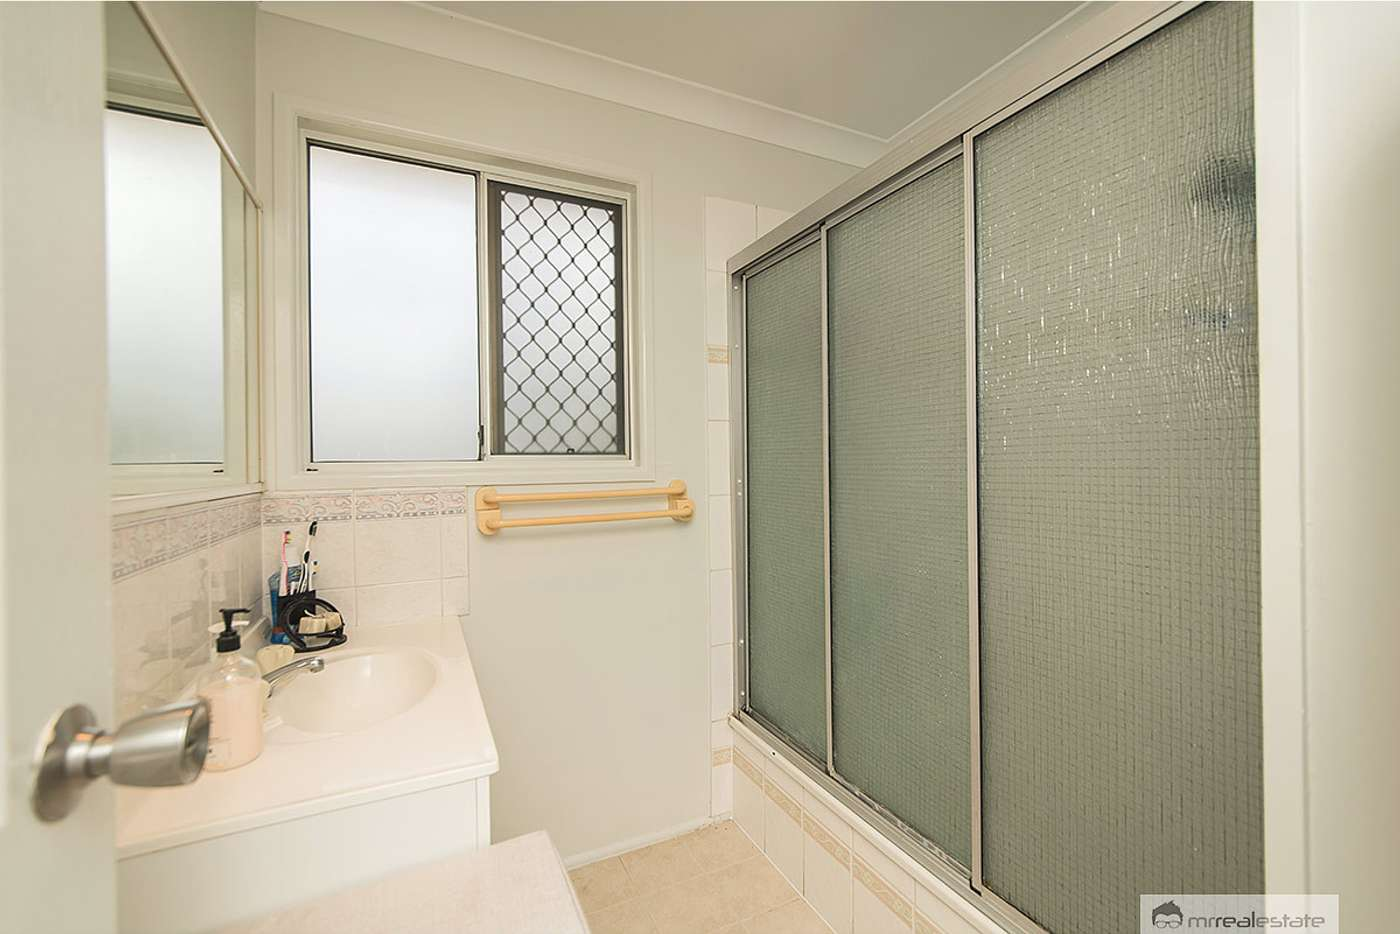 Sixth view of Homely house listing, 83 Simpson Street, Frenchville QLD 4701